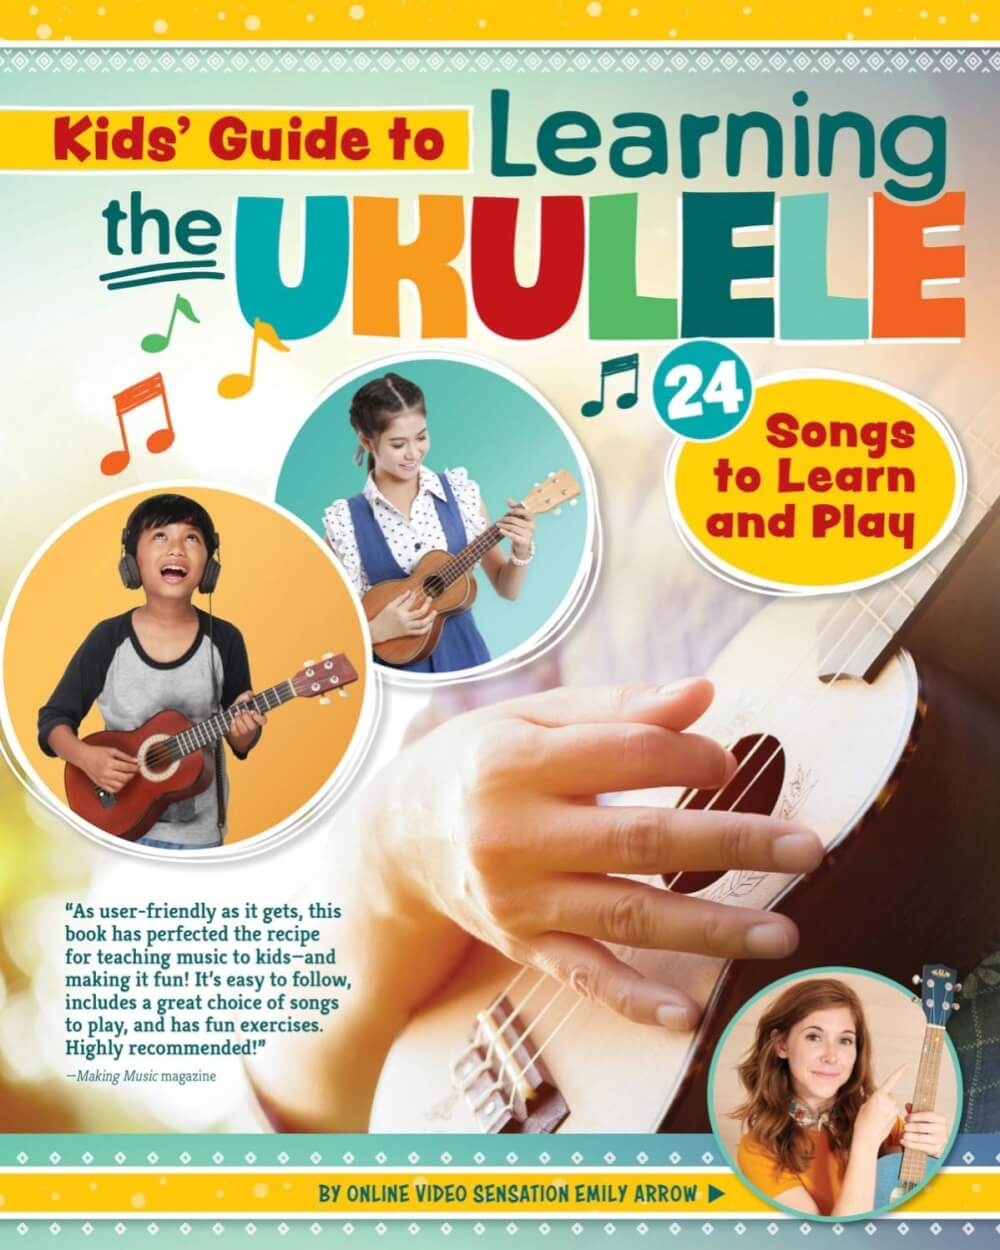 Find out the best kids ukulele book to buy in this ukulele guide by top Hawaii blog Hawaii Travel with Kids. Image of a Kids Guide to Learning the Ukulele